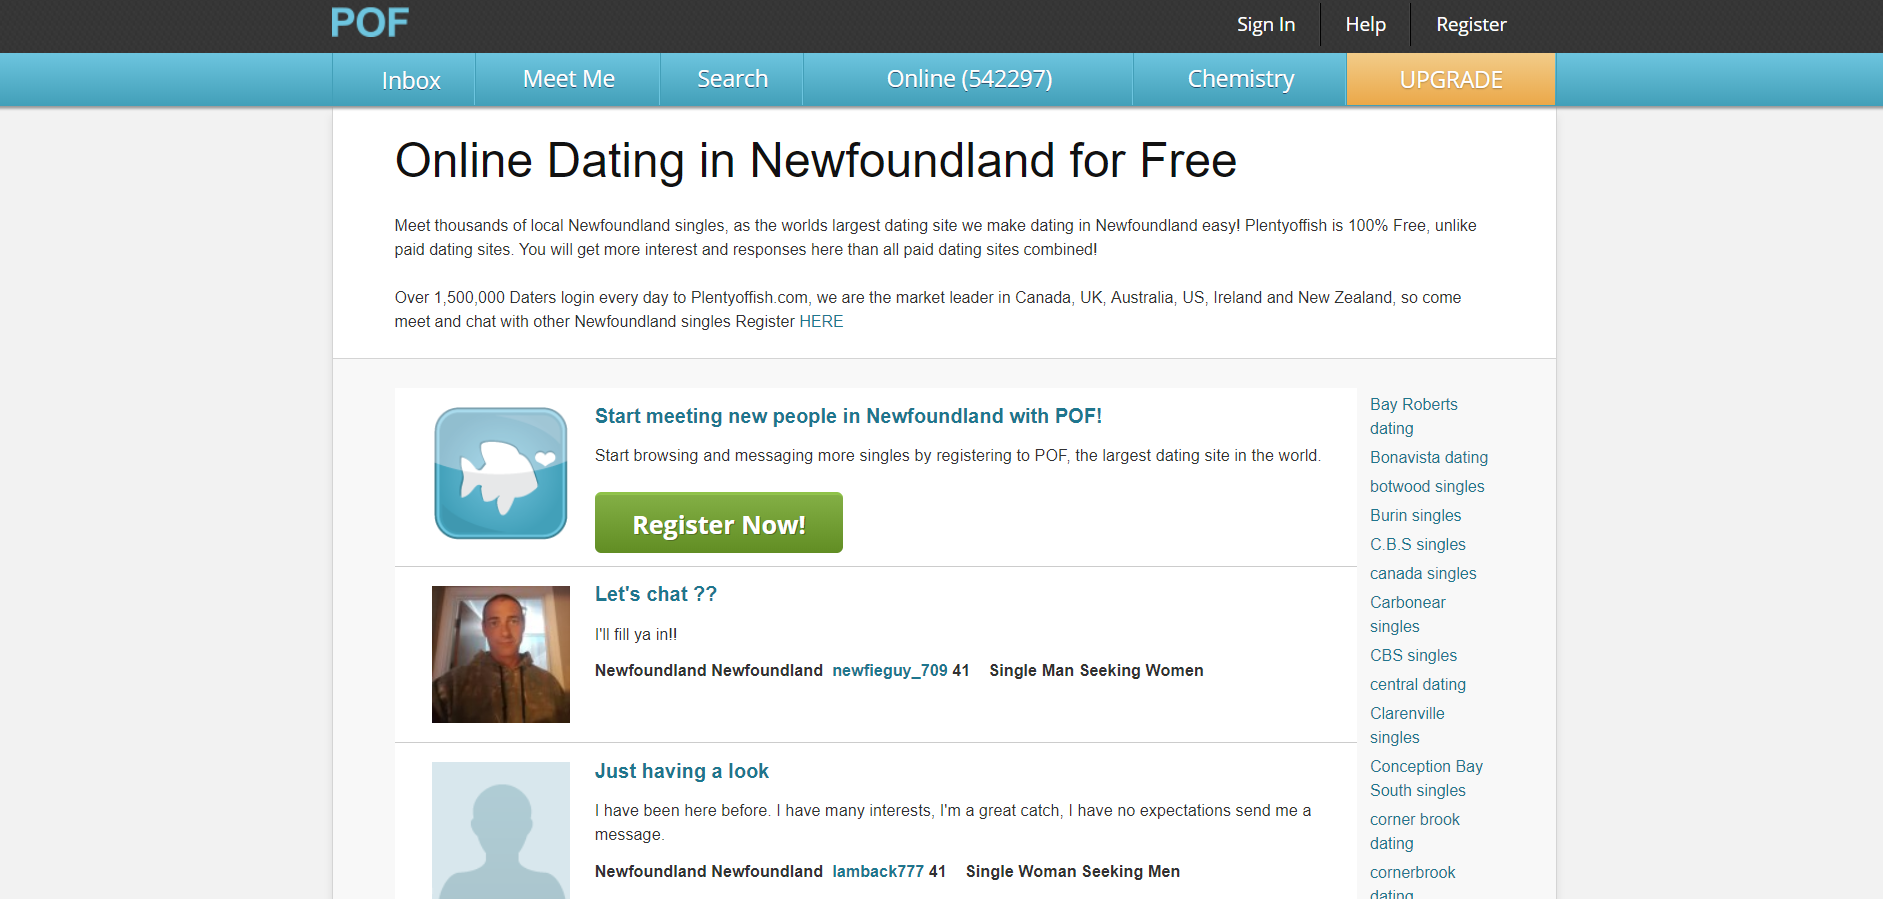 How To Find People From POF Newfoundland